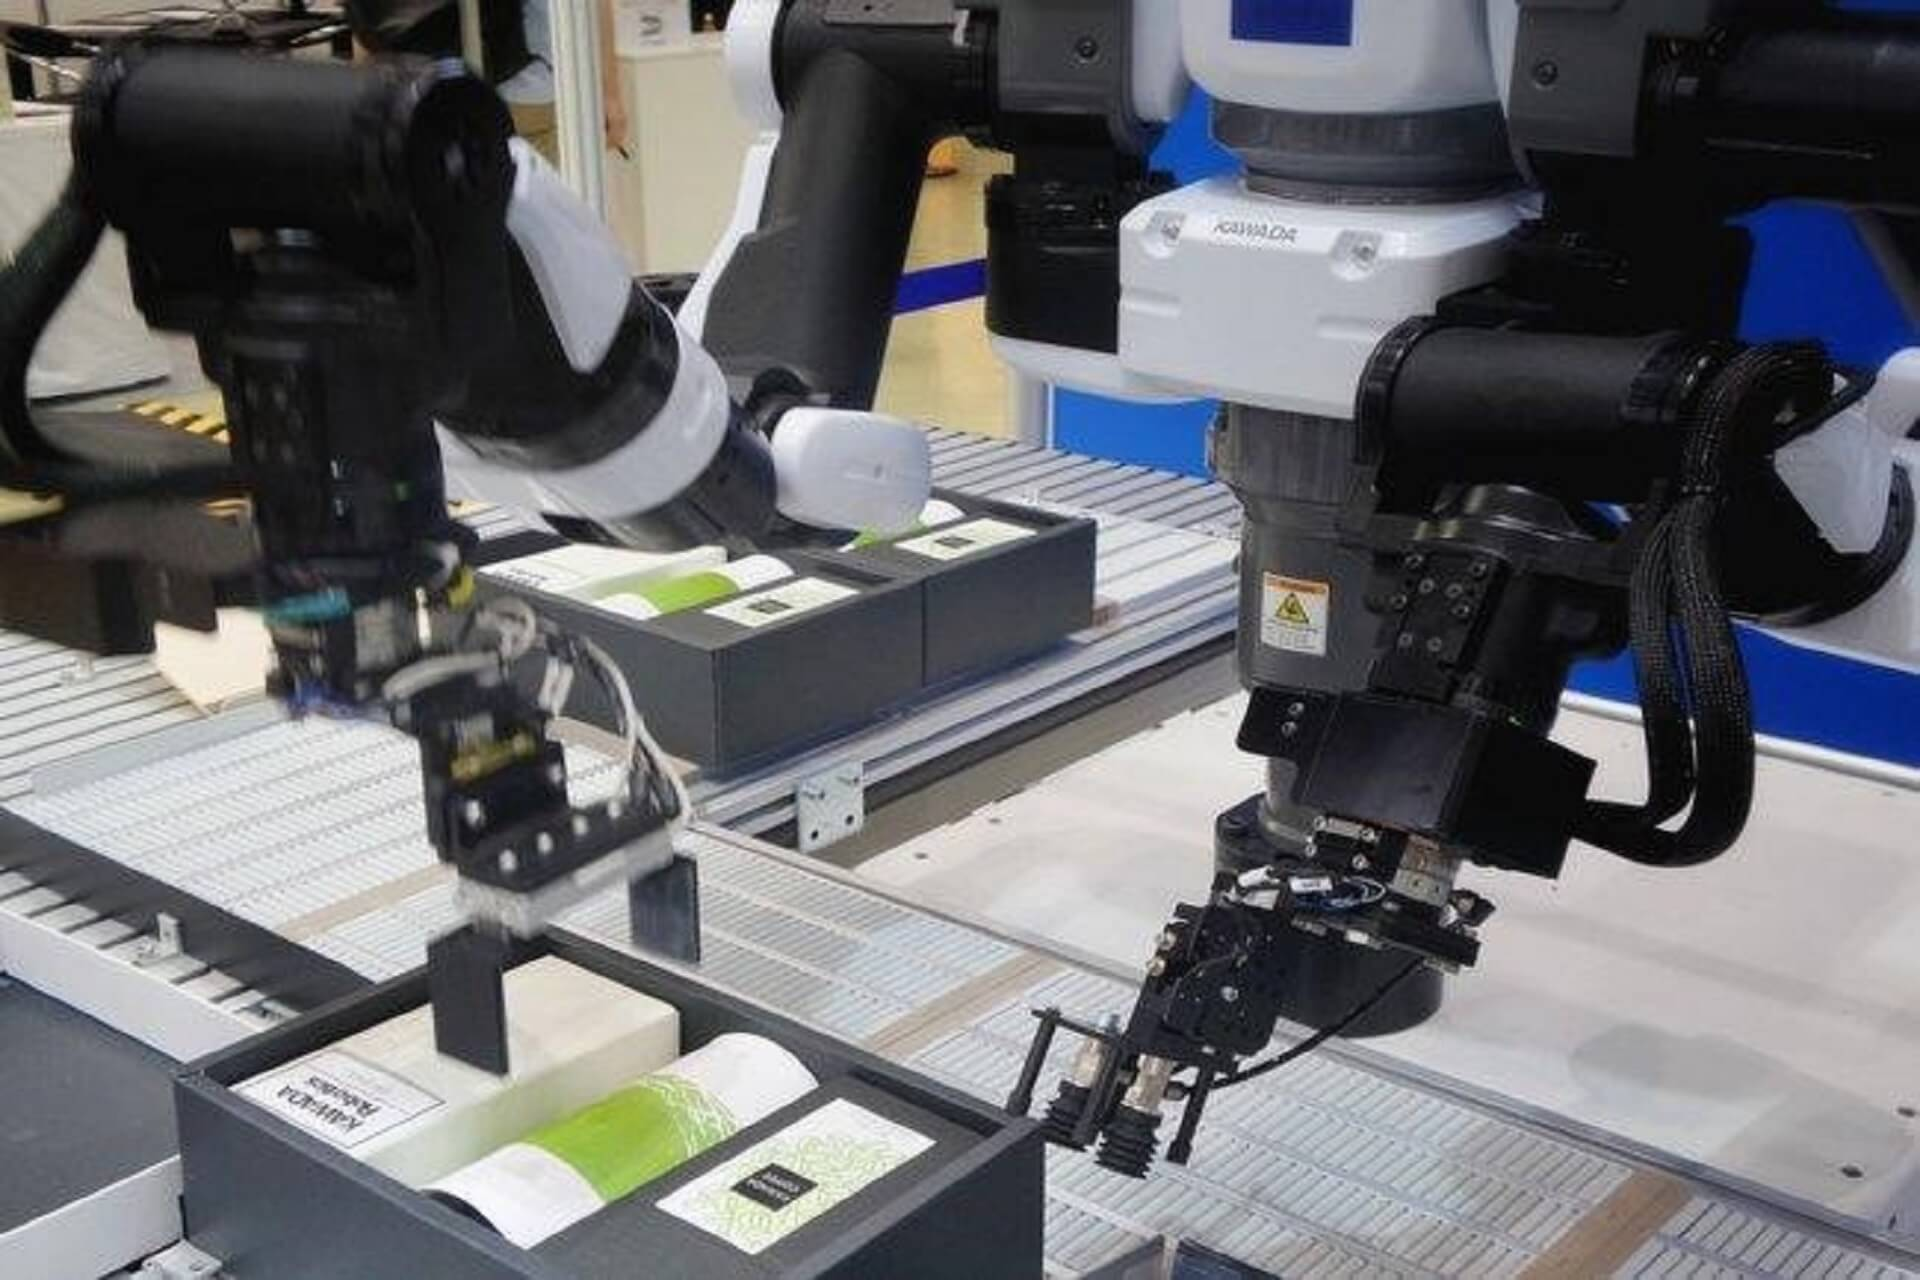 How Robotic Fulfillment Technology is Changing The Supply Chain